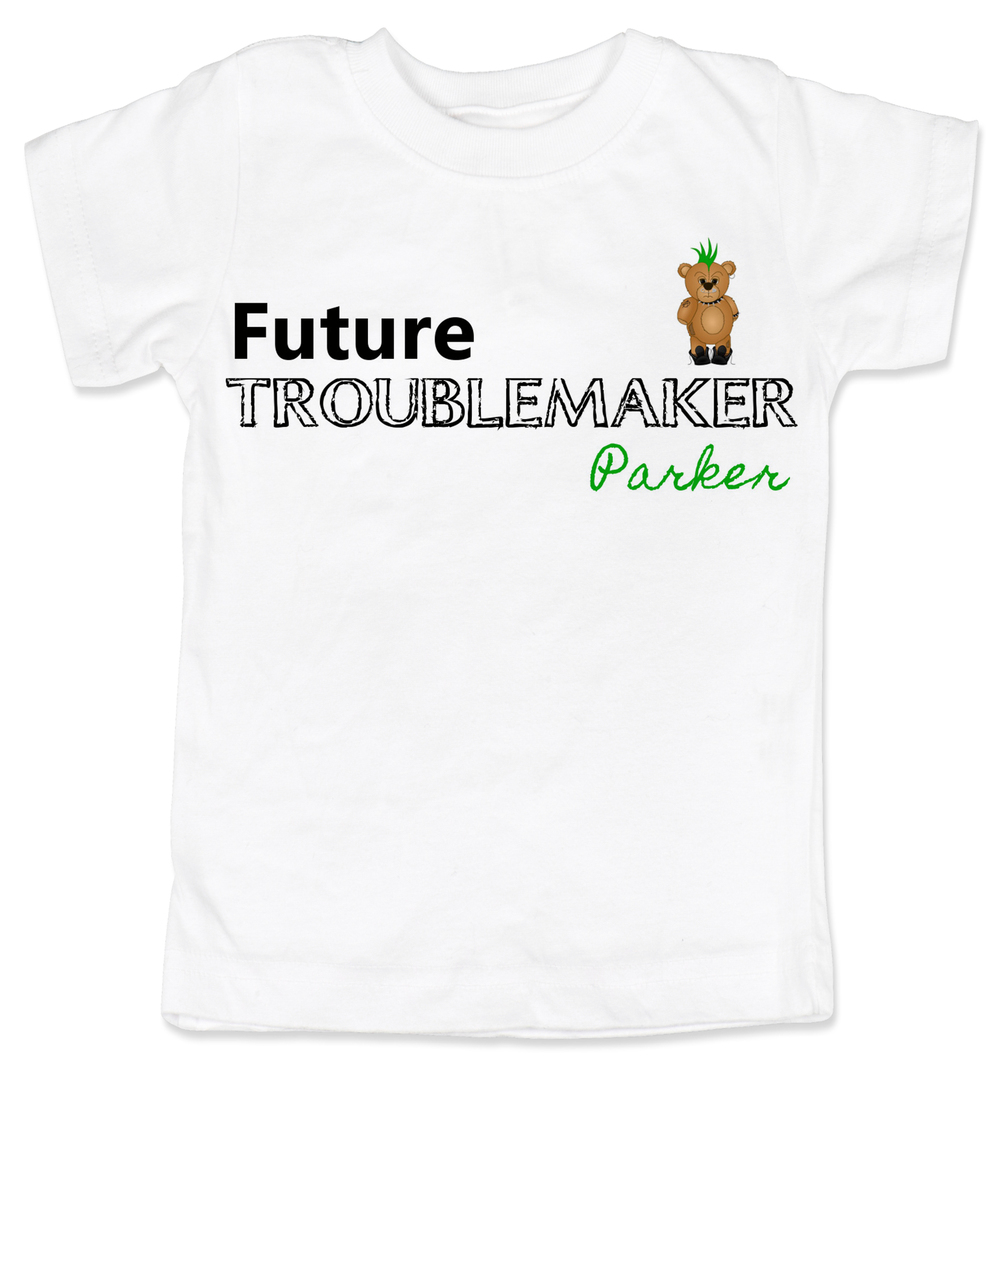 54b707664 Future Troublemaker Toddler Shirt